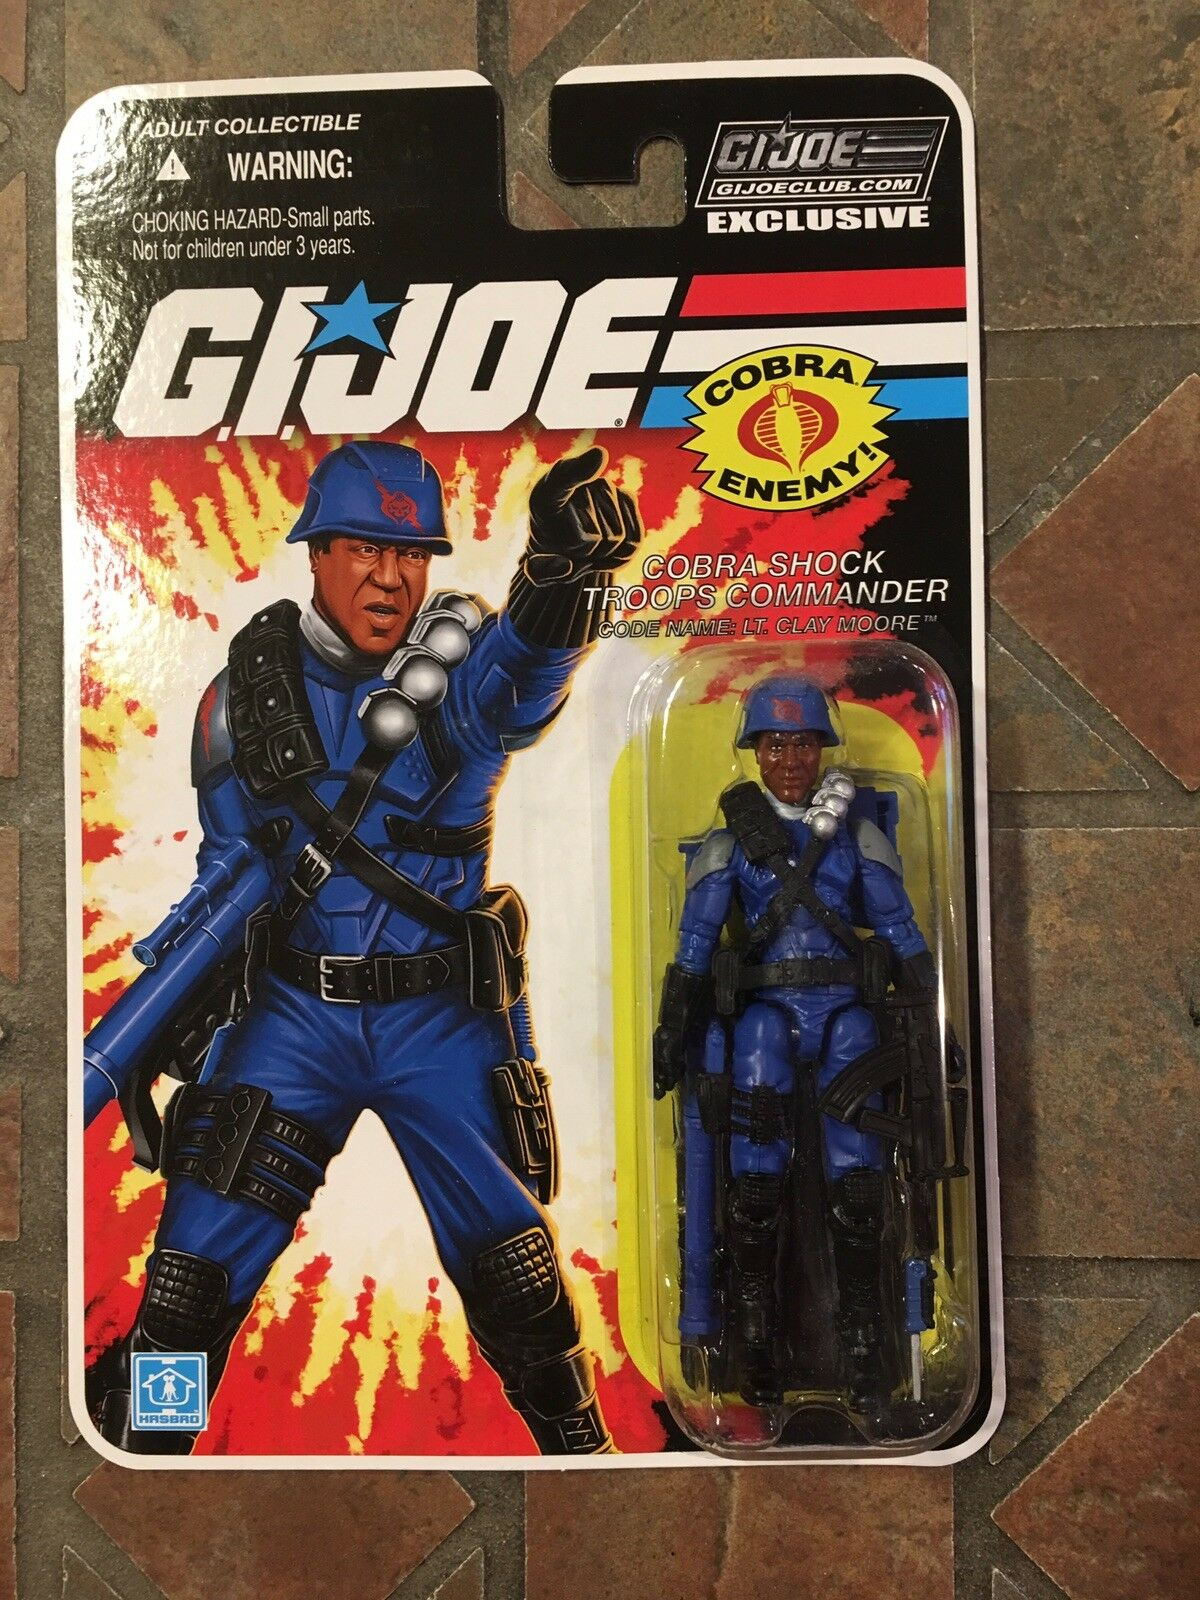 GI JOE LT CLAYMOORE  FSS  8.0 Con Collectors Club Exclusive cifra 2018  basta comprarlo